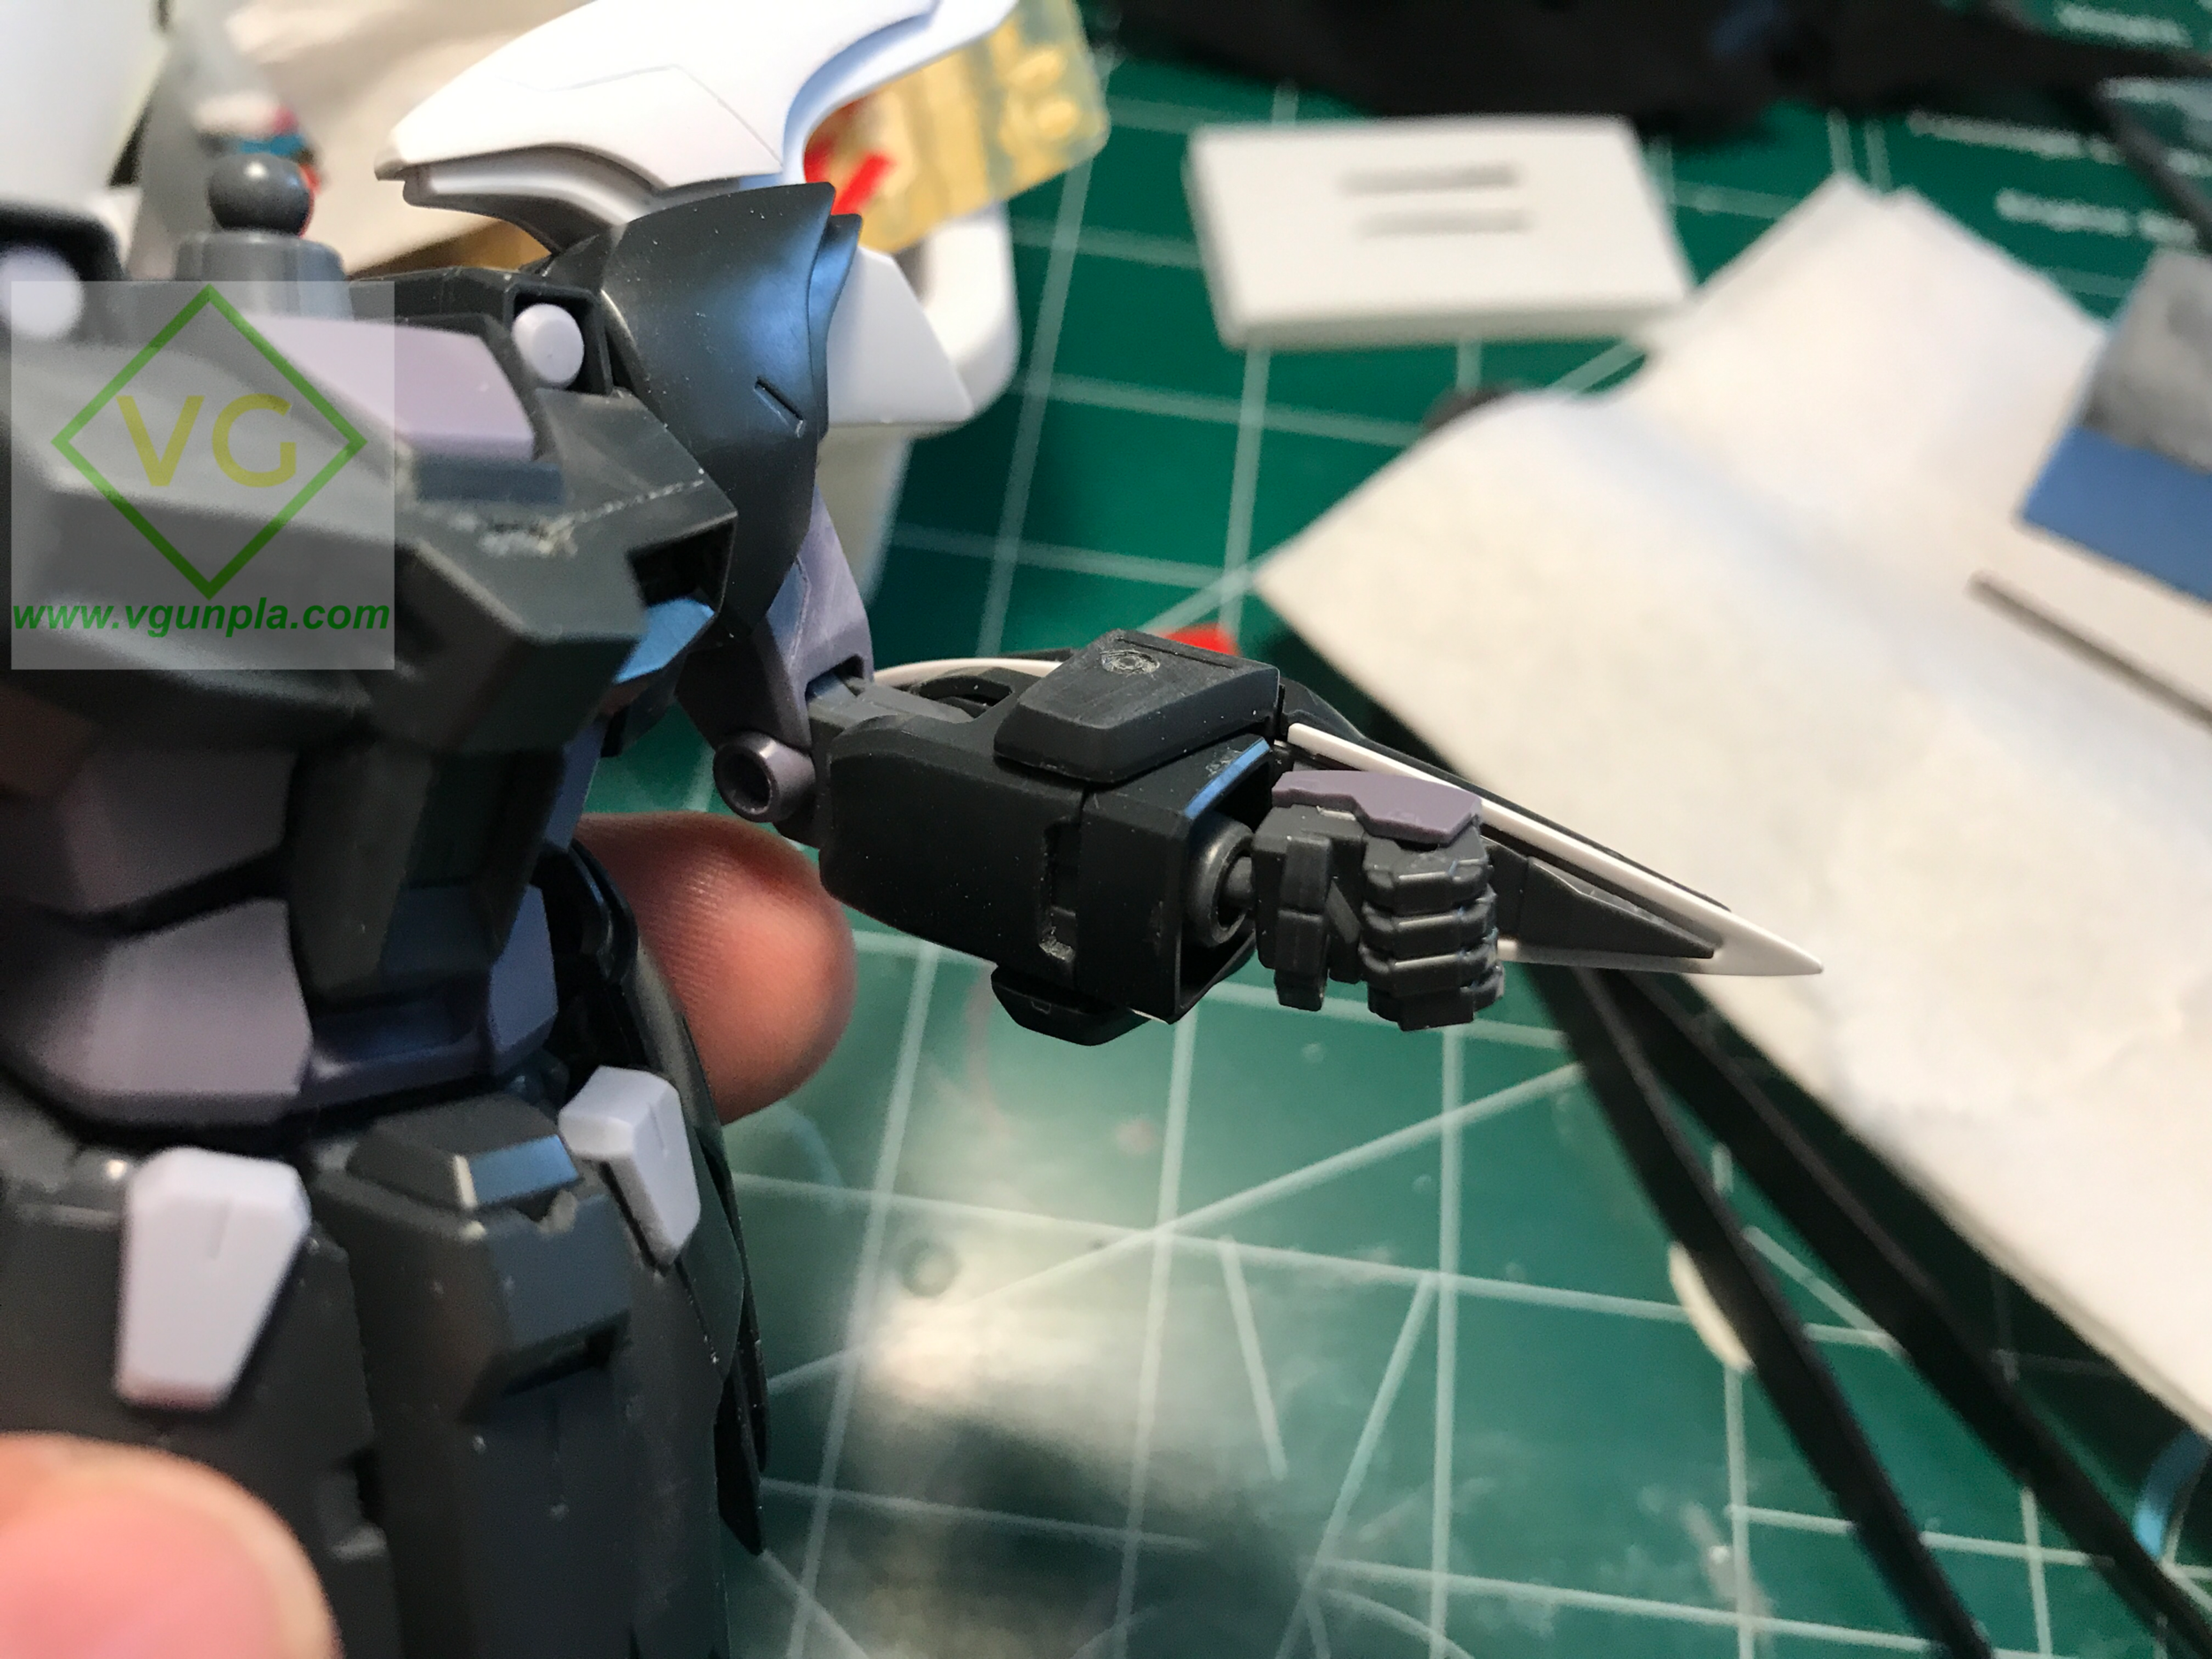 I cut a little notch on the inside of the arm to expose some of that sweet sweet inner frame!